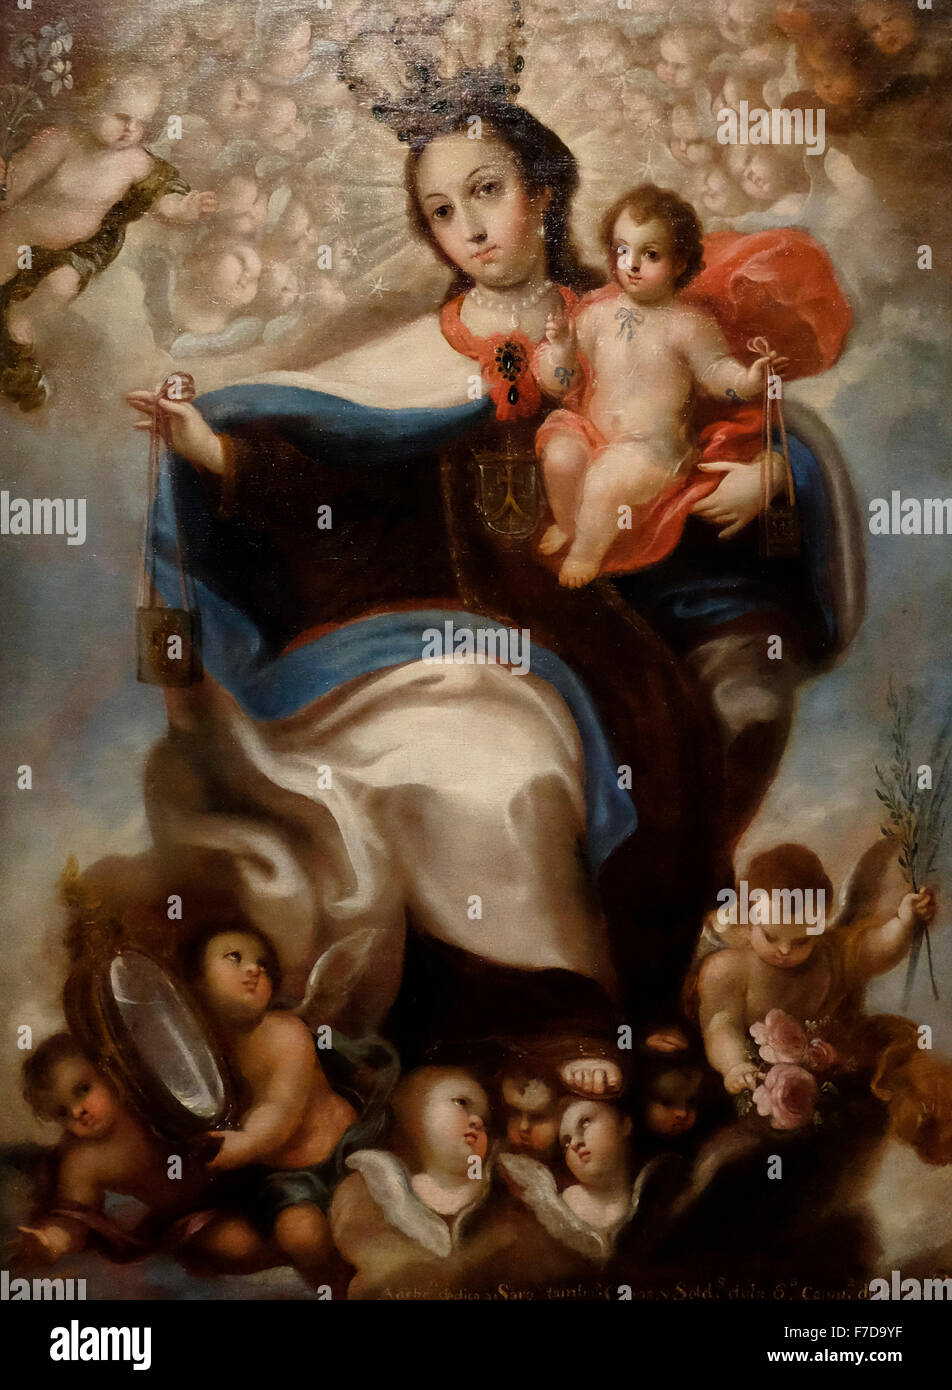 Our Lady of Mt. Carmel - Signed by Miguel Jeronimo Zendejas - Puebla, Mexico 1772 - Stock Image